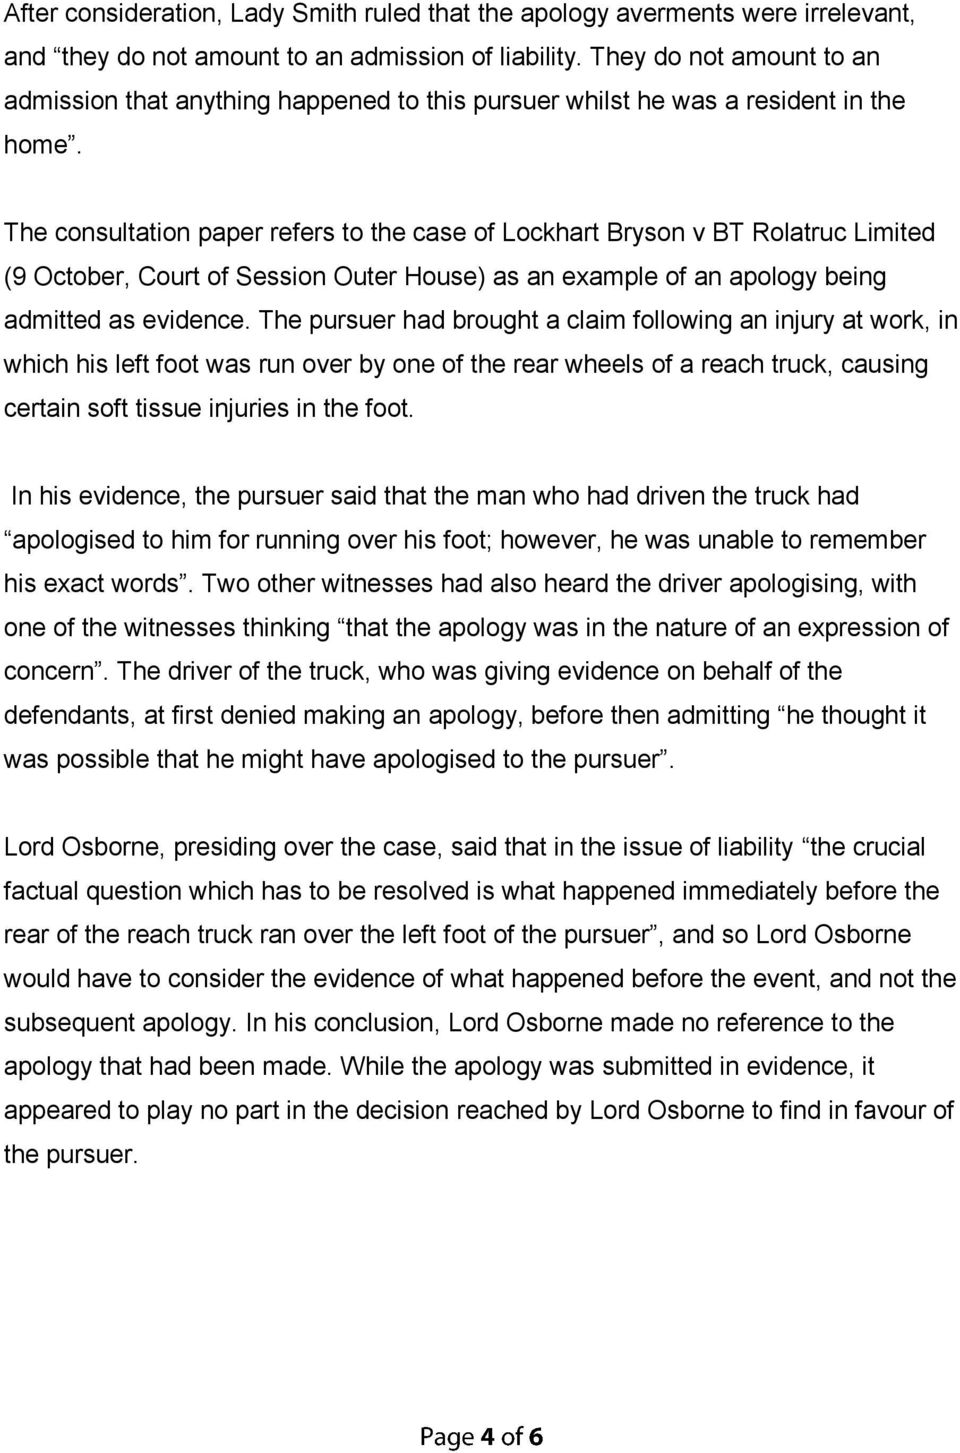 The consultation paper refers to the case of Lockhart Bryson v BT Rolatruc Limited (9 October, Court of Session Outer House) as an example of an apology being admitted as evidence.